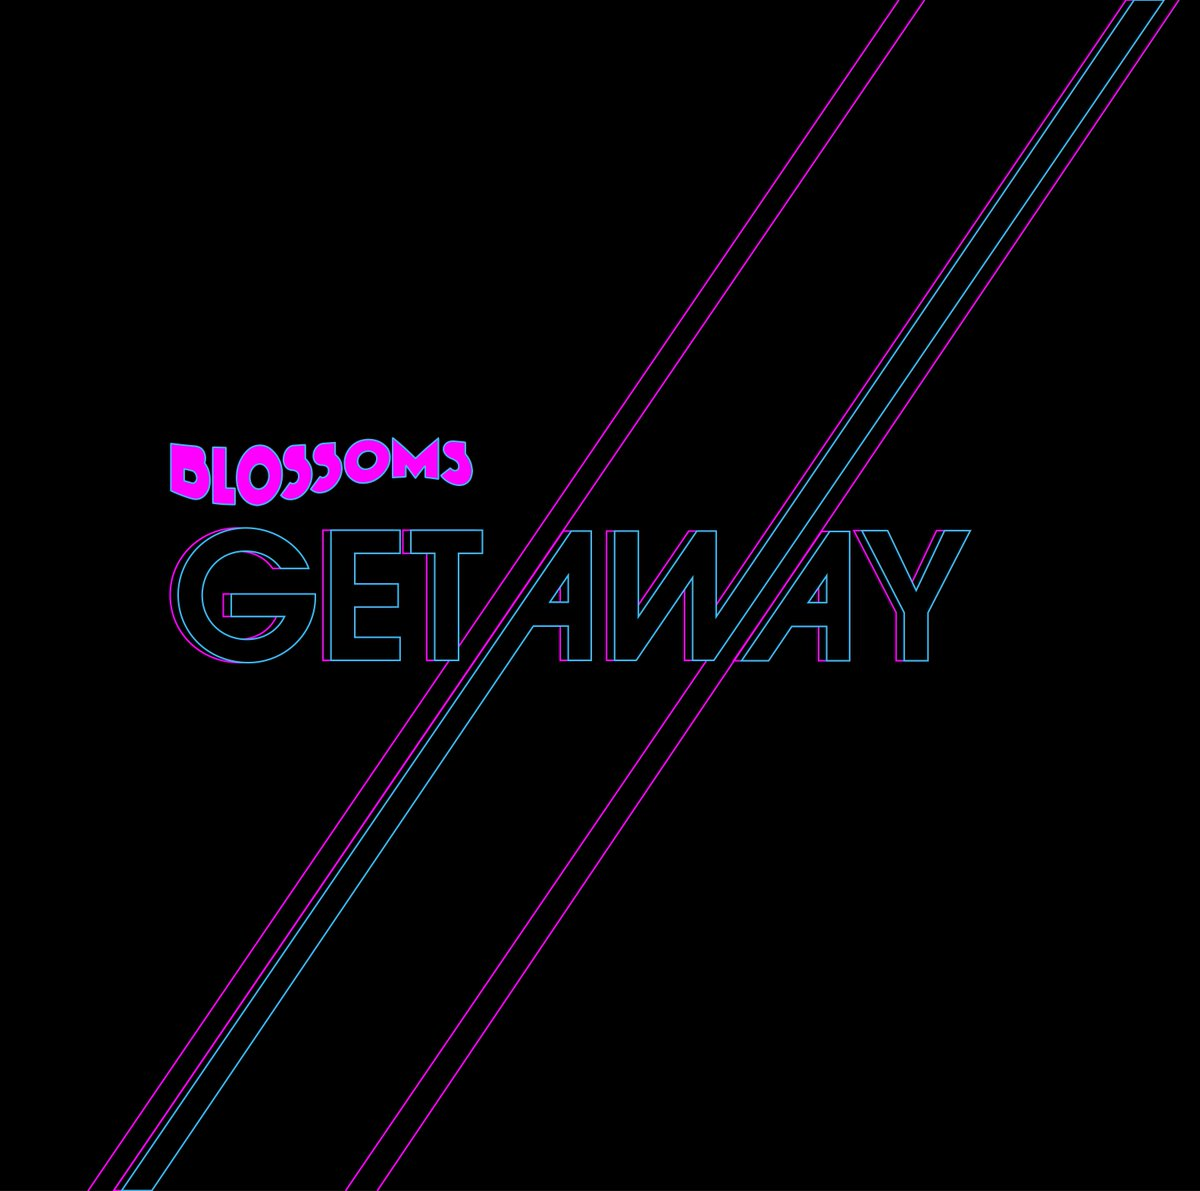 OUR BRAND NEW SINGLE 'GETAWAY' AVAILABLE TO DOWNLOAD@ MIDNIGHT ON iTUNES